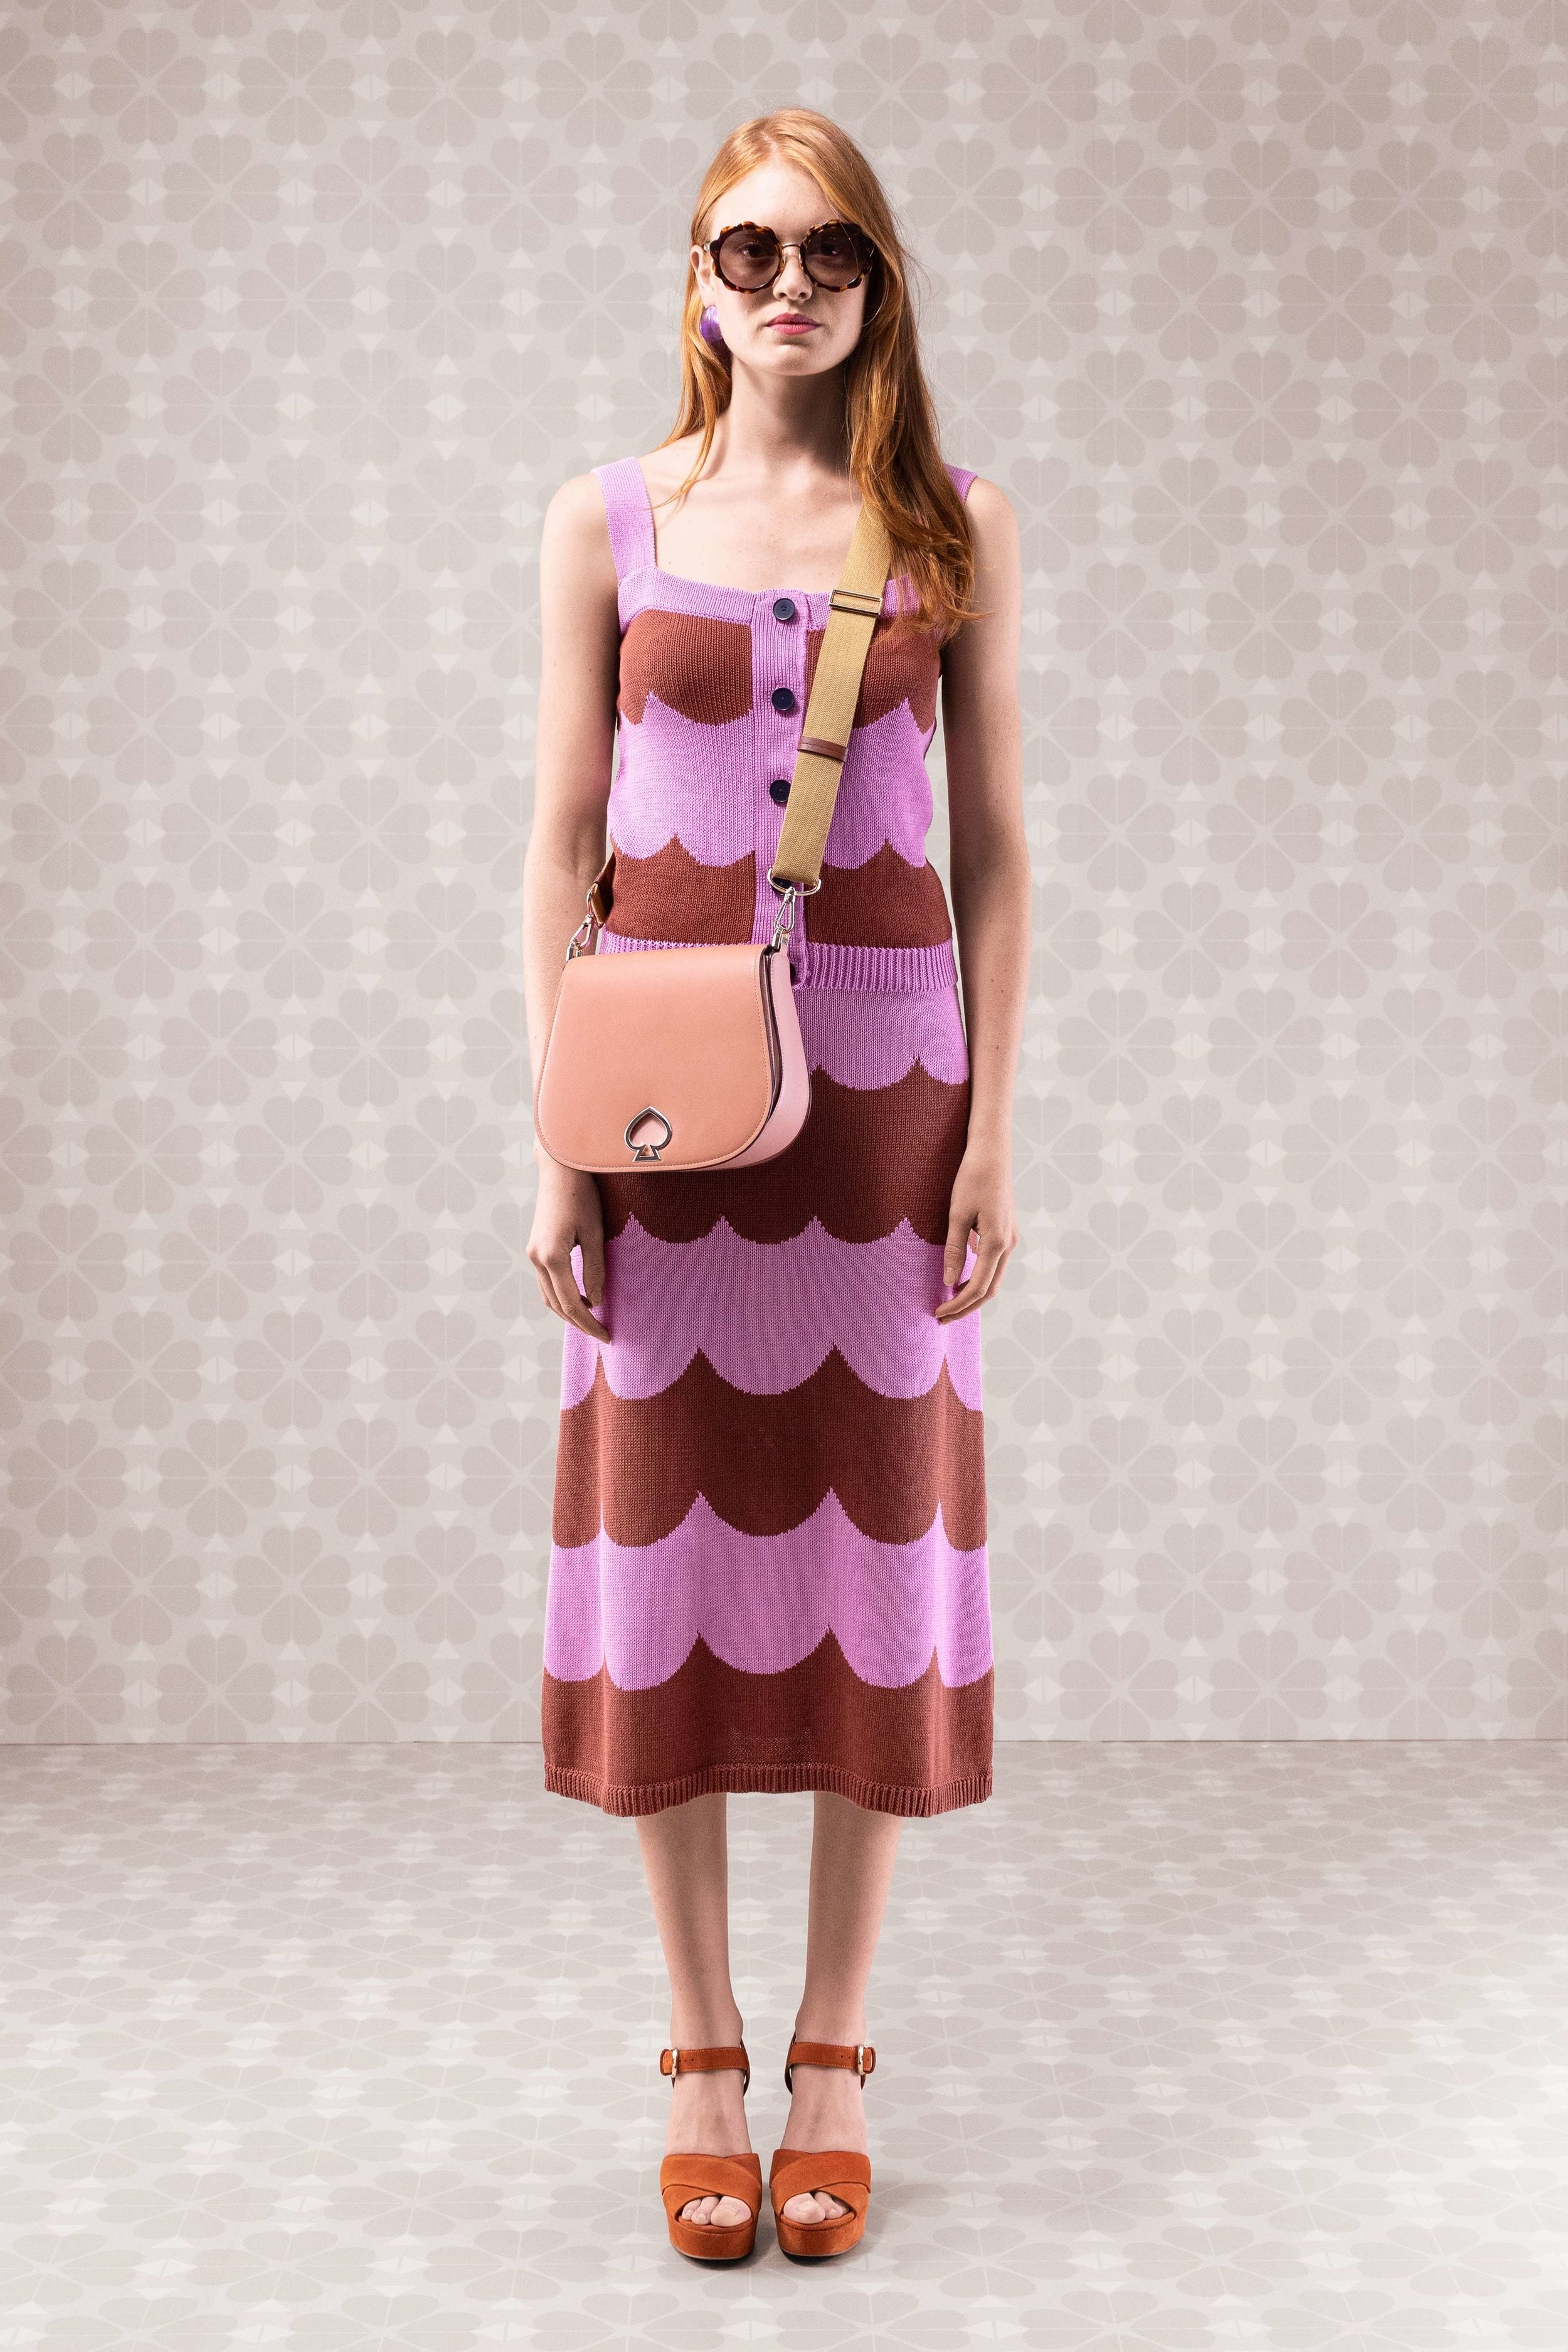 00019-kate-spade-new-york-pre-fall-2019.jpg